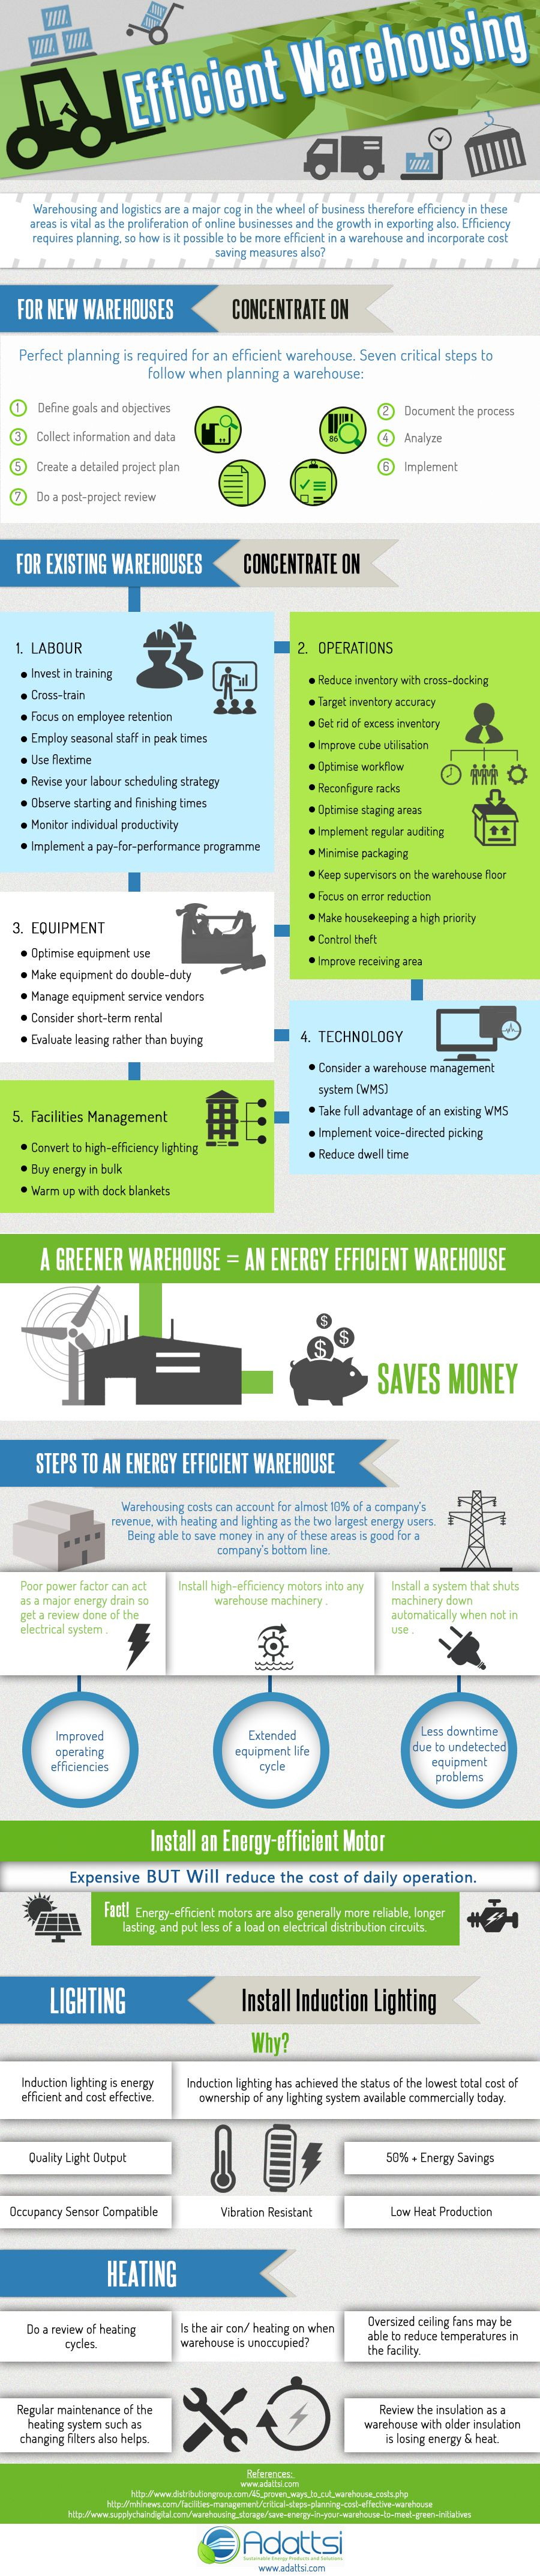 The infographic details green and efficient warehousing ...